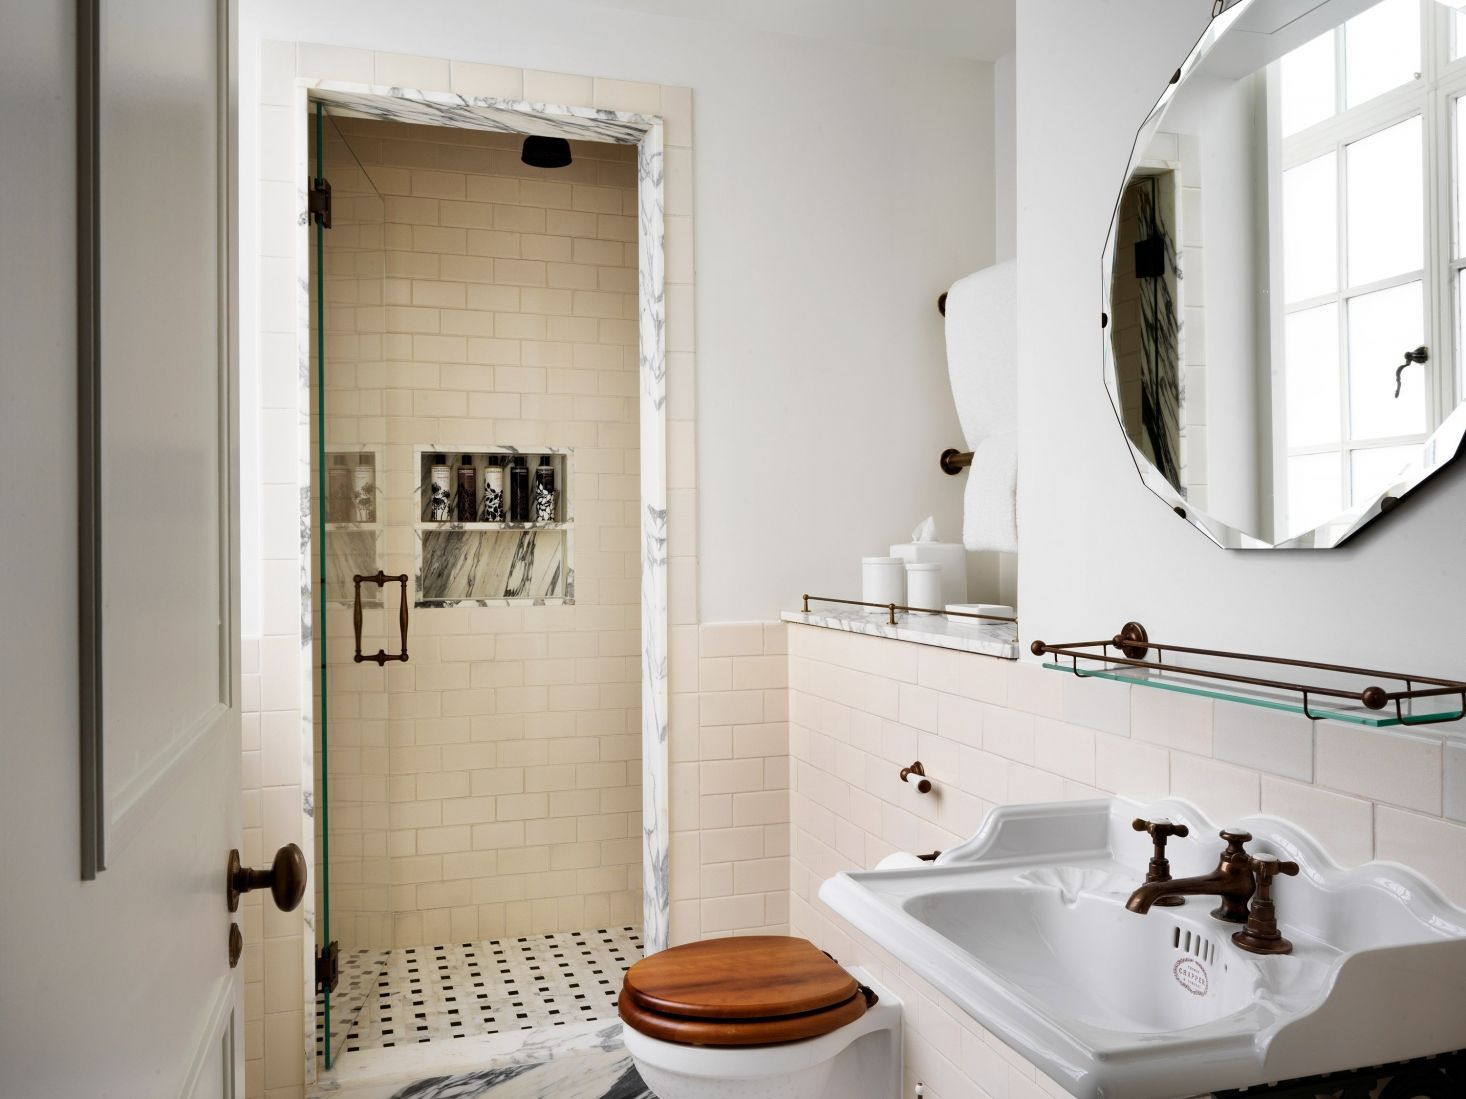 The Ned Hotel A Stately London Landmark Transformed English Vintage Edition Remodelista Bathroom Model Remodelista Bathroom Bathroom Design